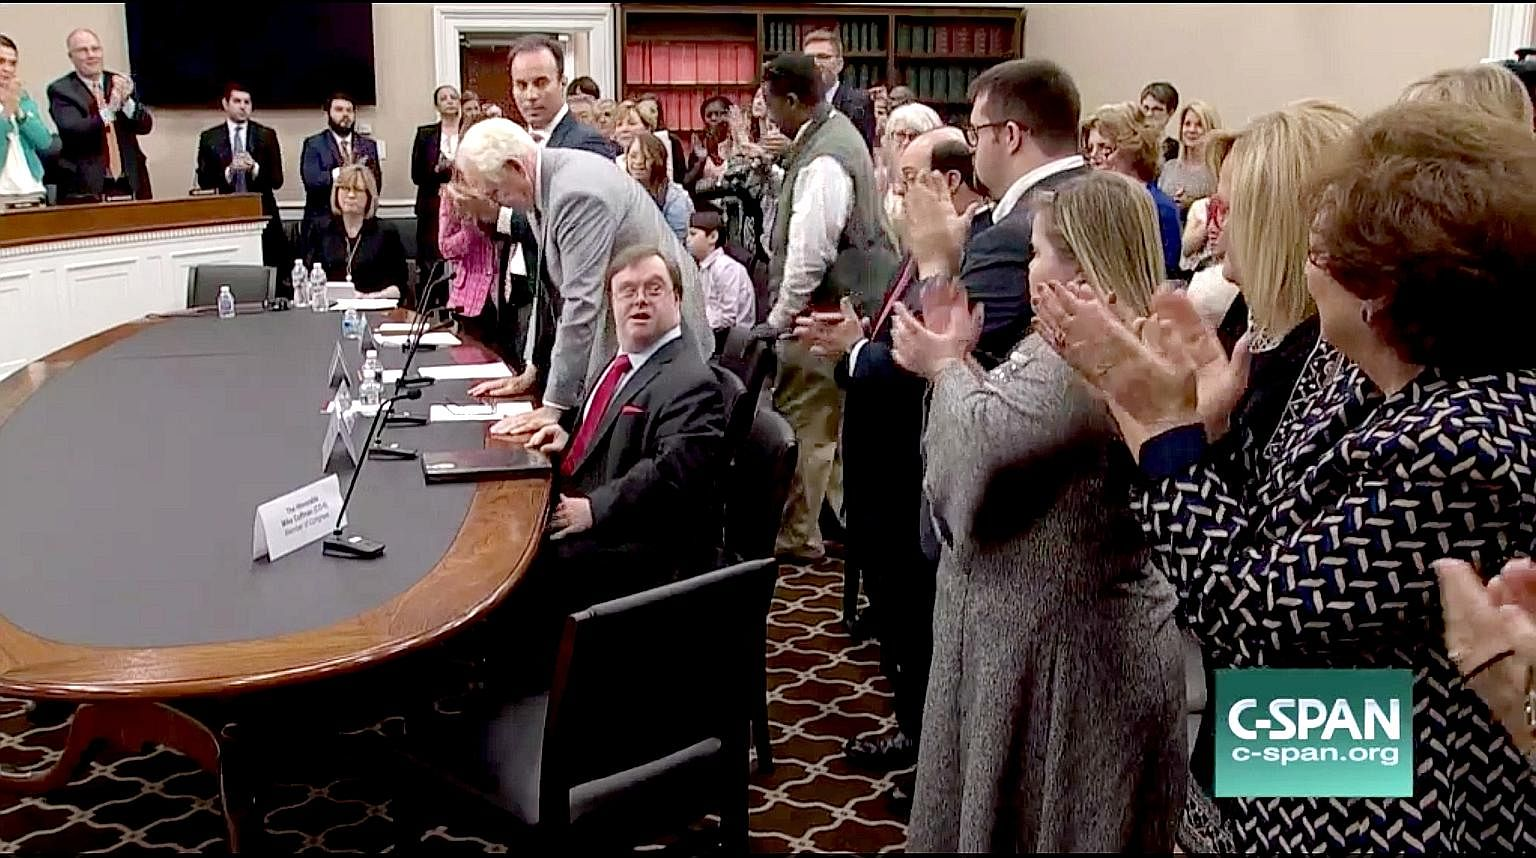 A post put up reportedly on behalf of the Russian government to sway the US presidential elections last year. Mr John Franklin Stephens (seated) at a US congressional hearing last week. He was urging the allocation of federal funds to conduct further